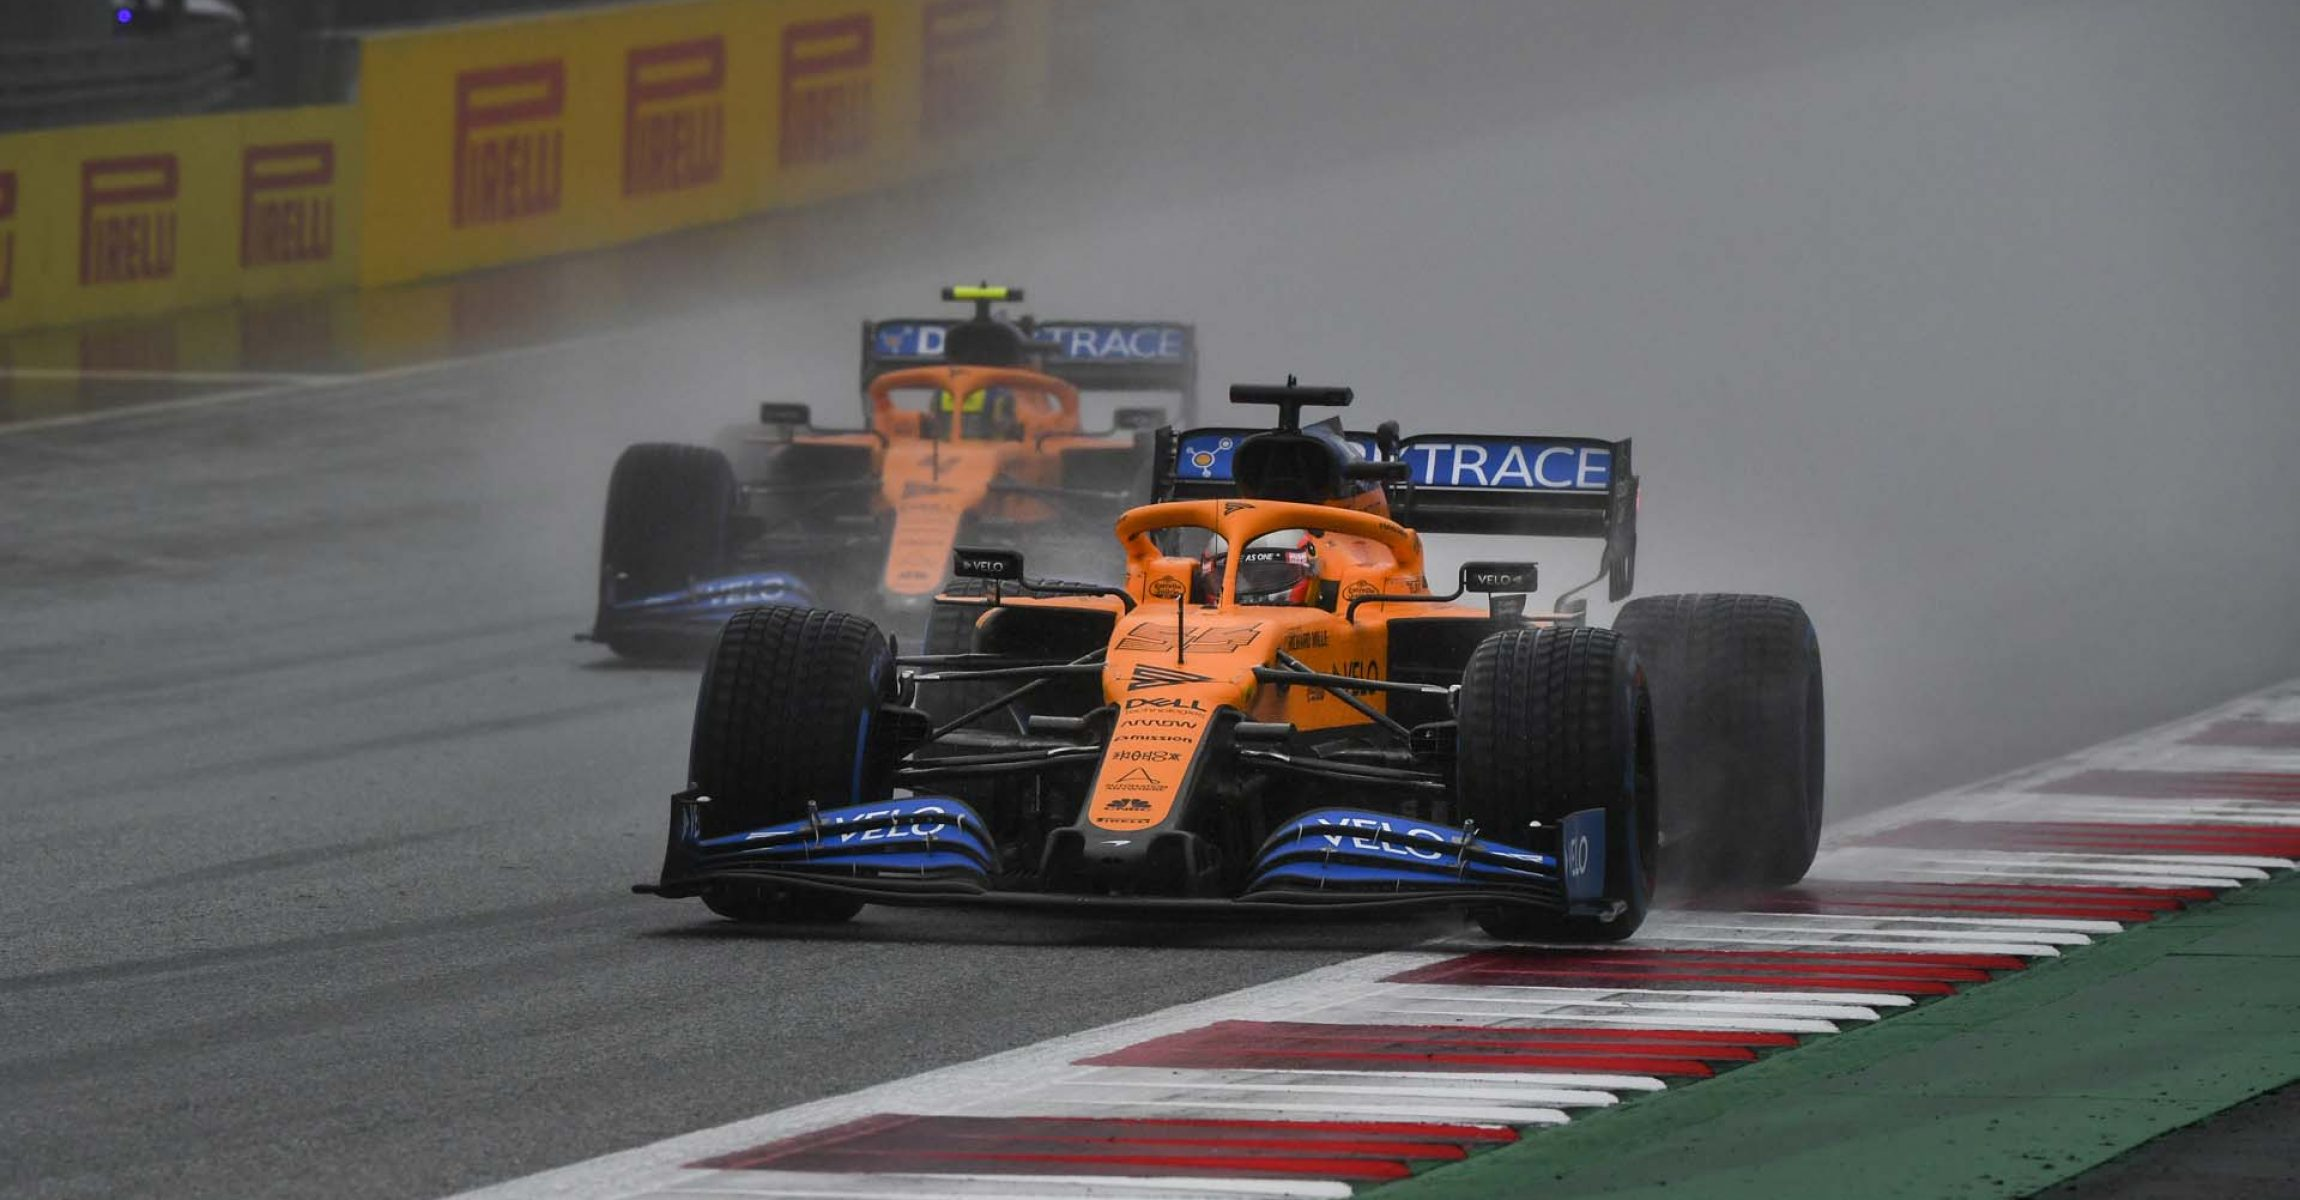 RED BULL RING, AUSTRIA - JULY 11: Carlos Sainz, McLaren MCL35, leads Lando Norris, McLaren MCL35 during the Styrian GP at Red Bull Ring on Saturday July 11, 2020 in Spielberg, Austria. (Photo by Mark Sutton / LAT Images)